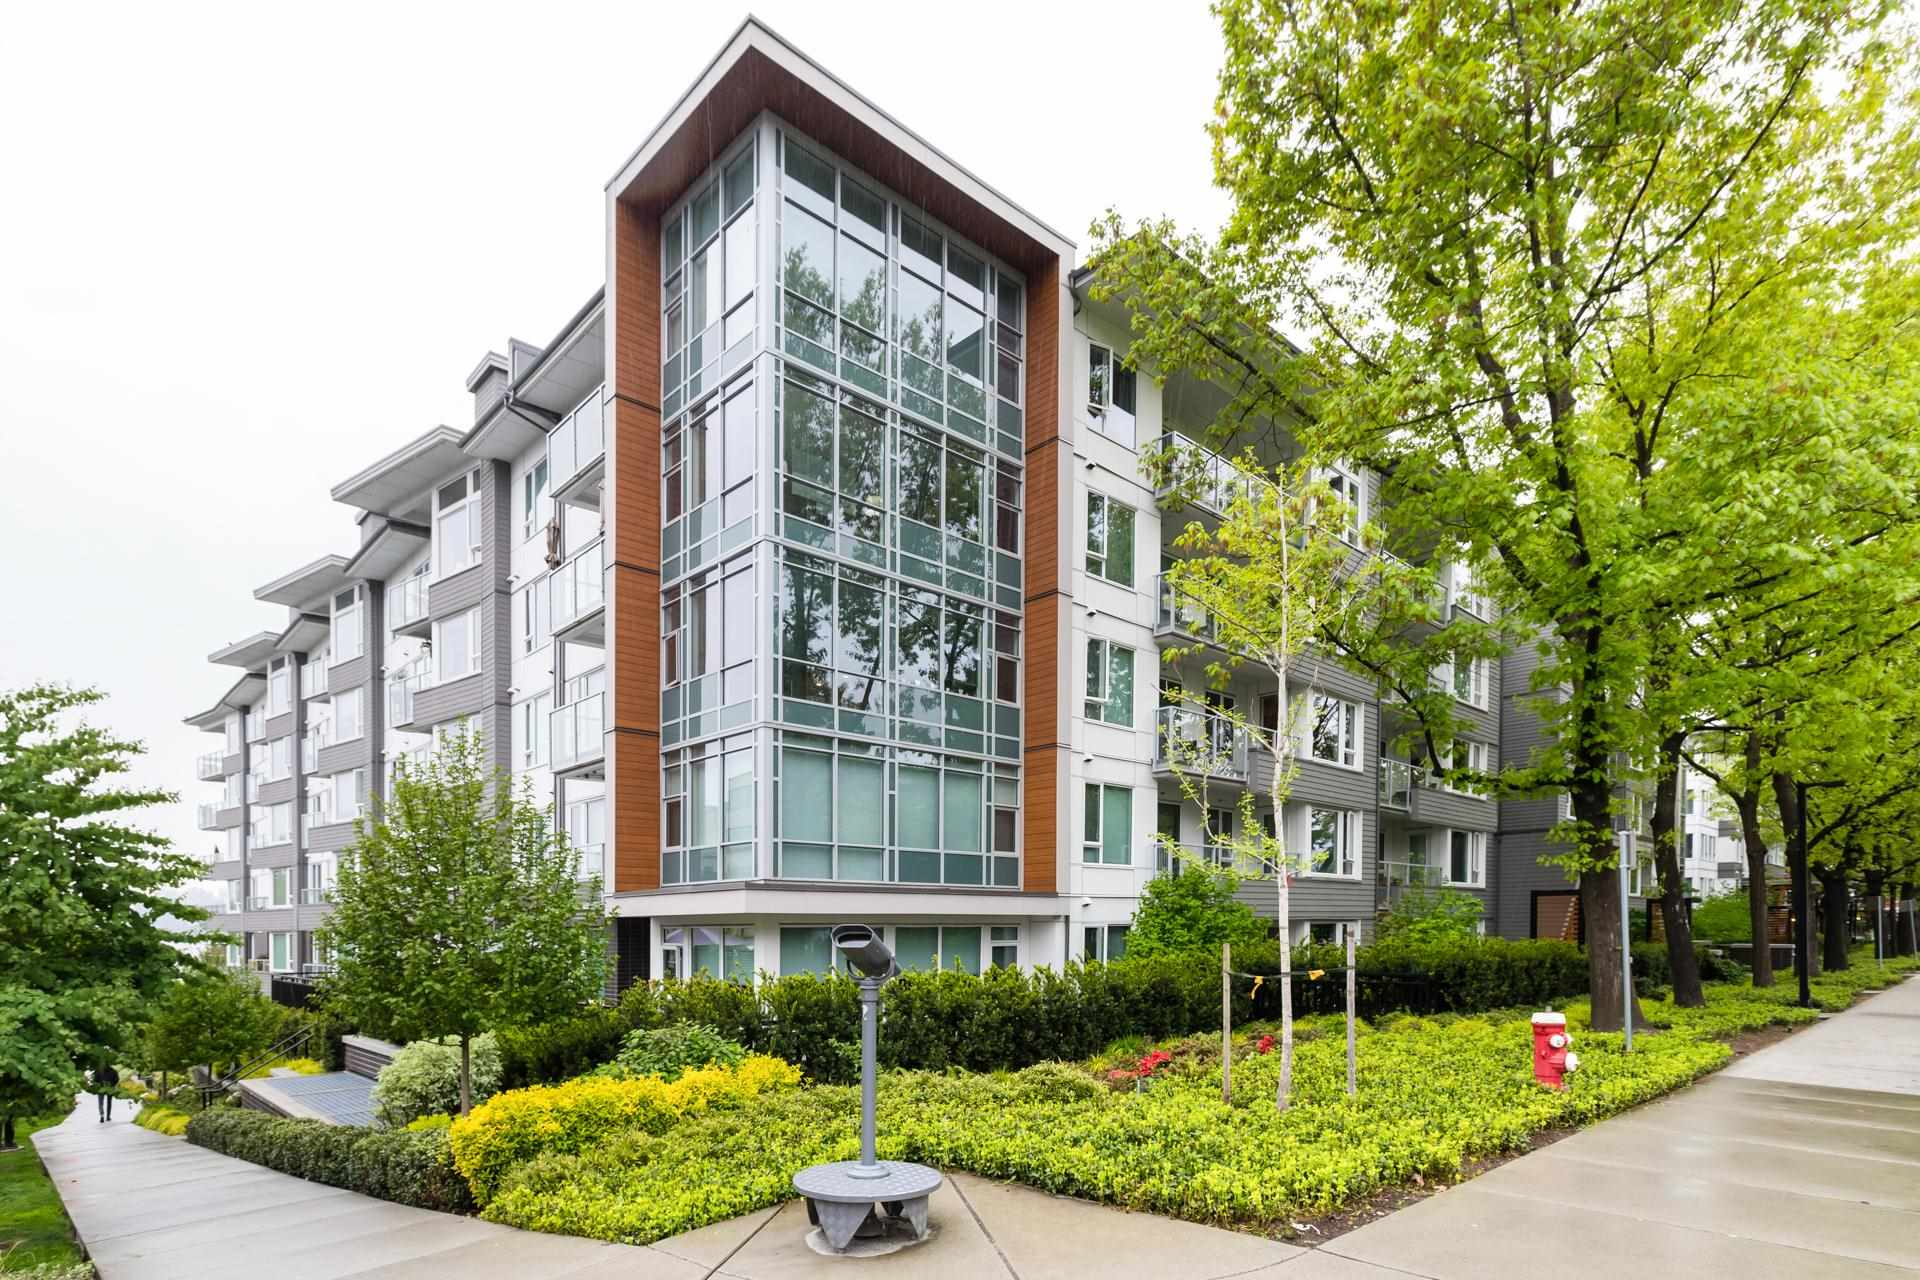 207 255 W 1ST STREET - Lower Lonsdale Apartment/Condo for sale, 2 Bedrooms (R2603882) - #34